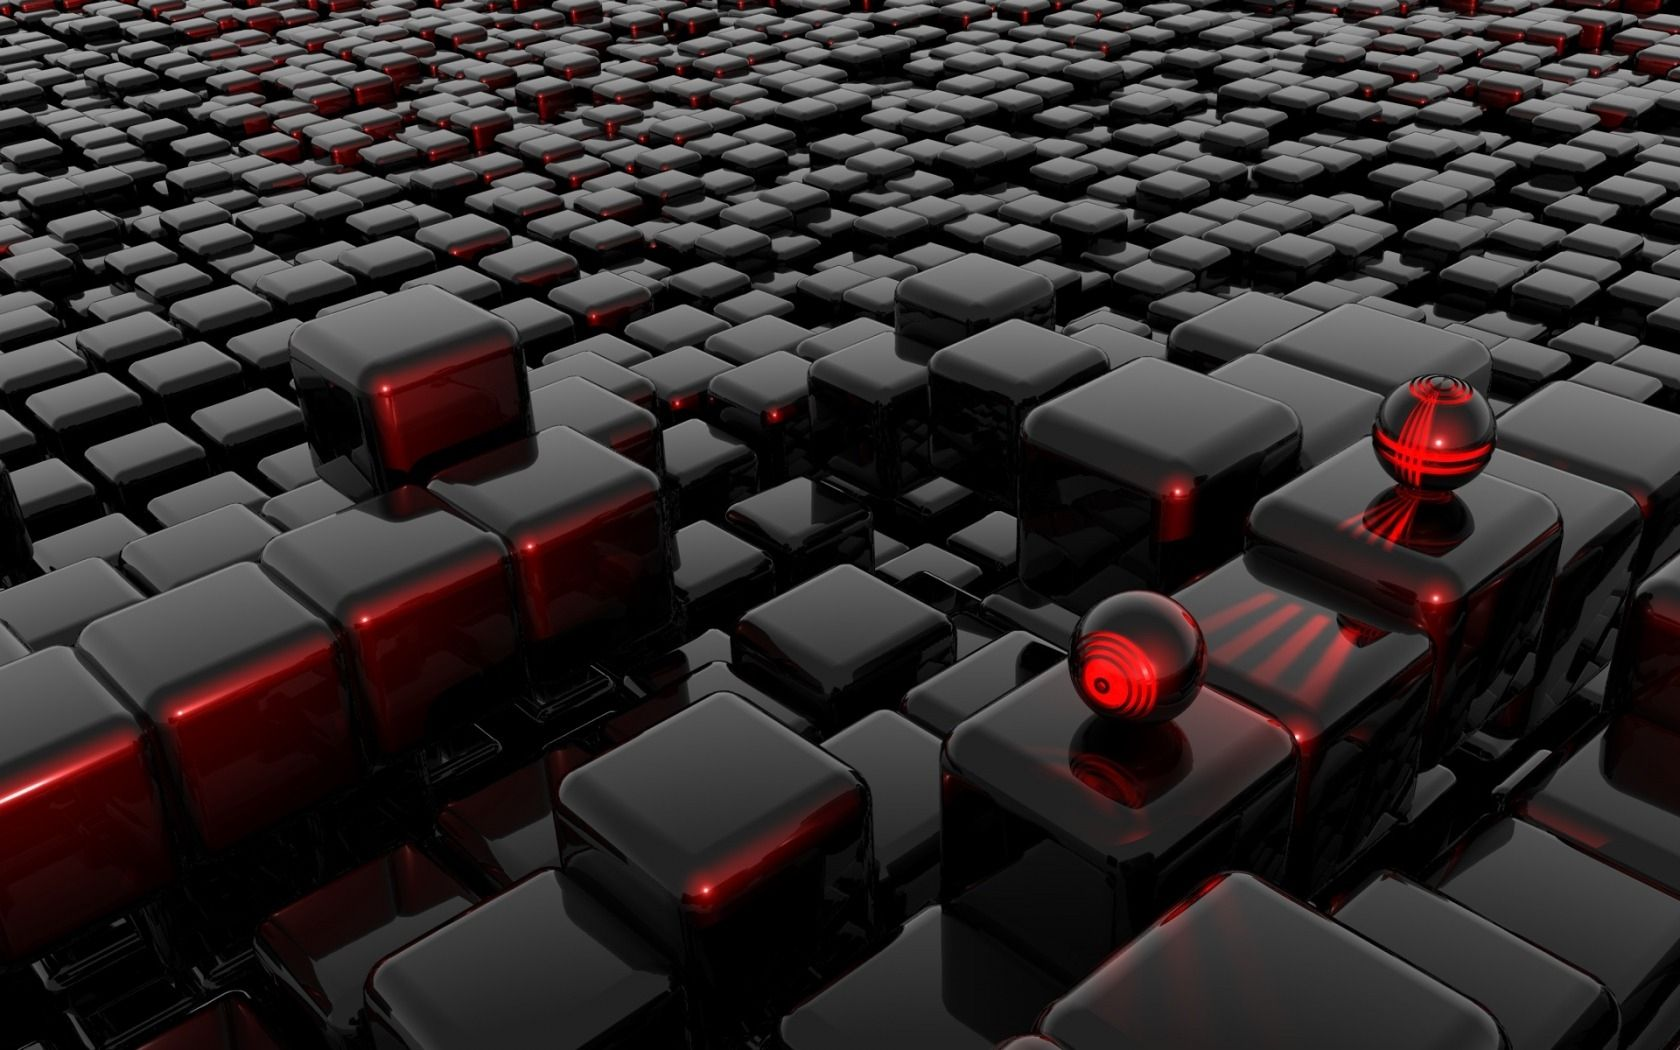 Hd wallpaper red and black - Black And Red D Widescreen Full Hd Wallpaper